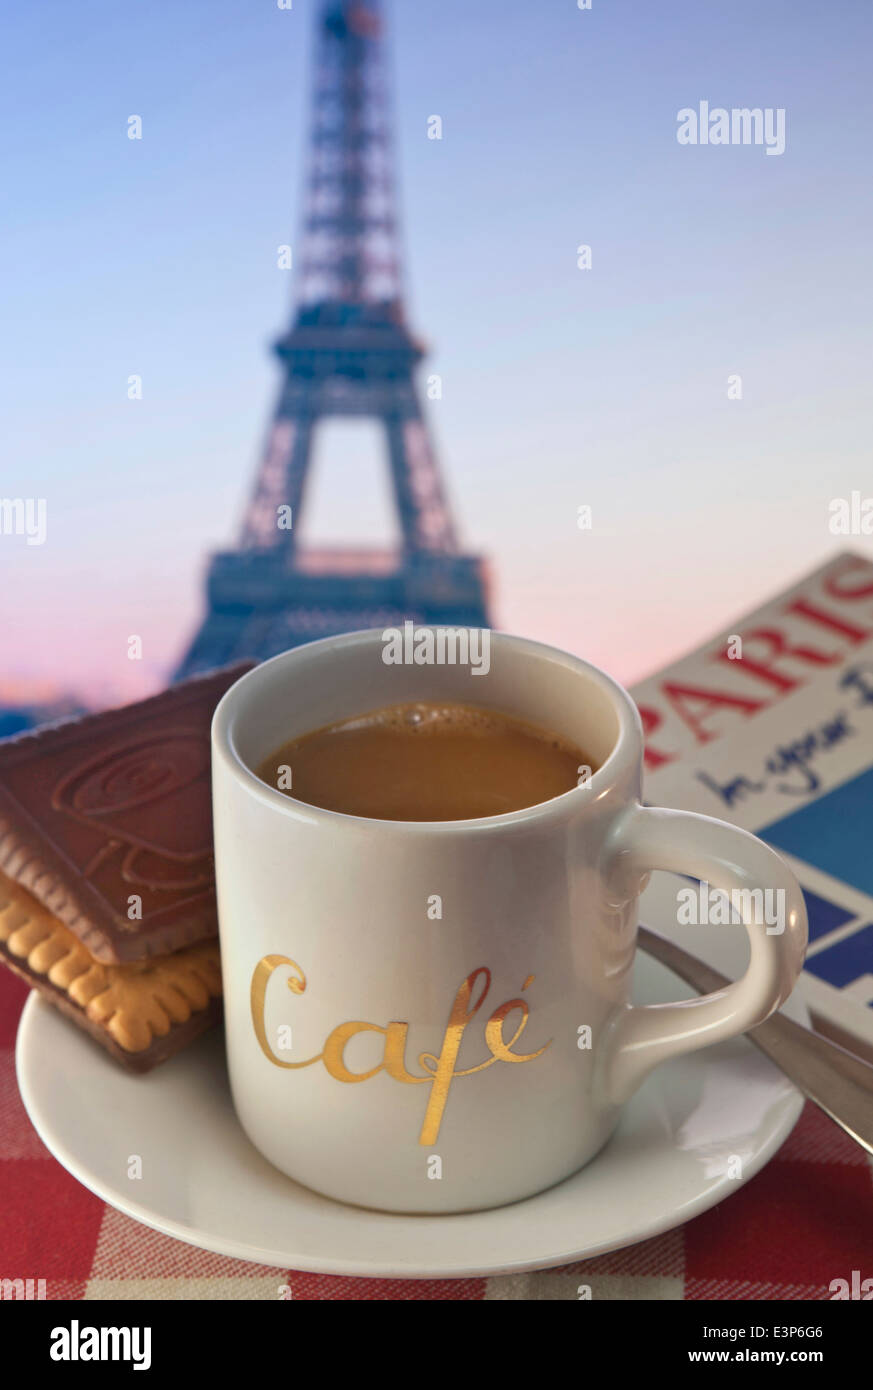 Outdoor cafe in paris with tower in background - Coffee And Biscuits On Cafe Table And Tourist Guide Book With Eiffel Tower In Background Paris